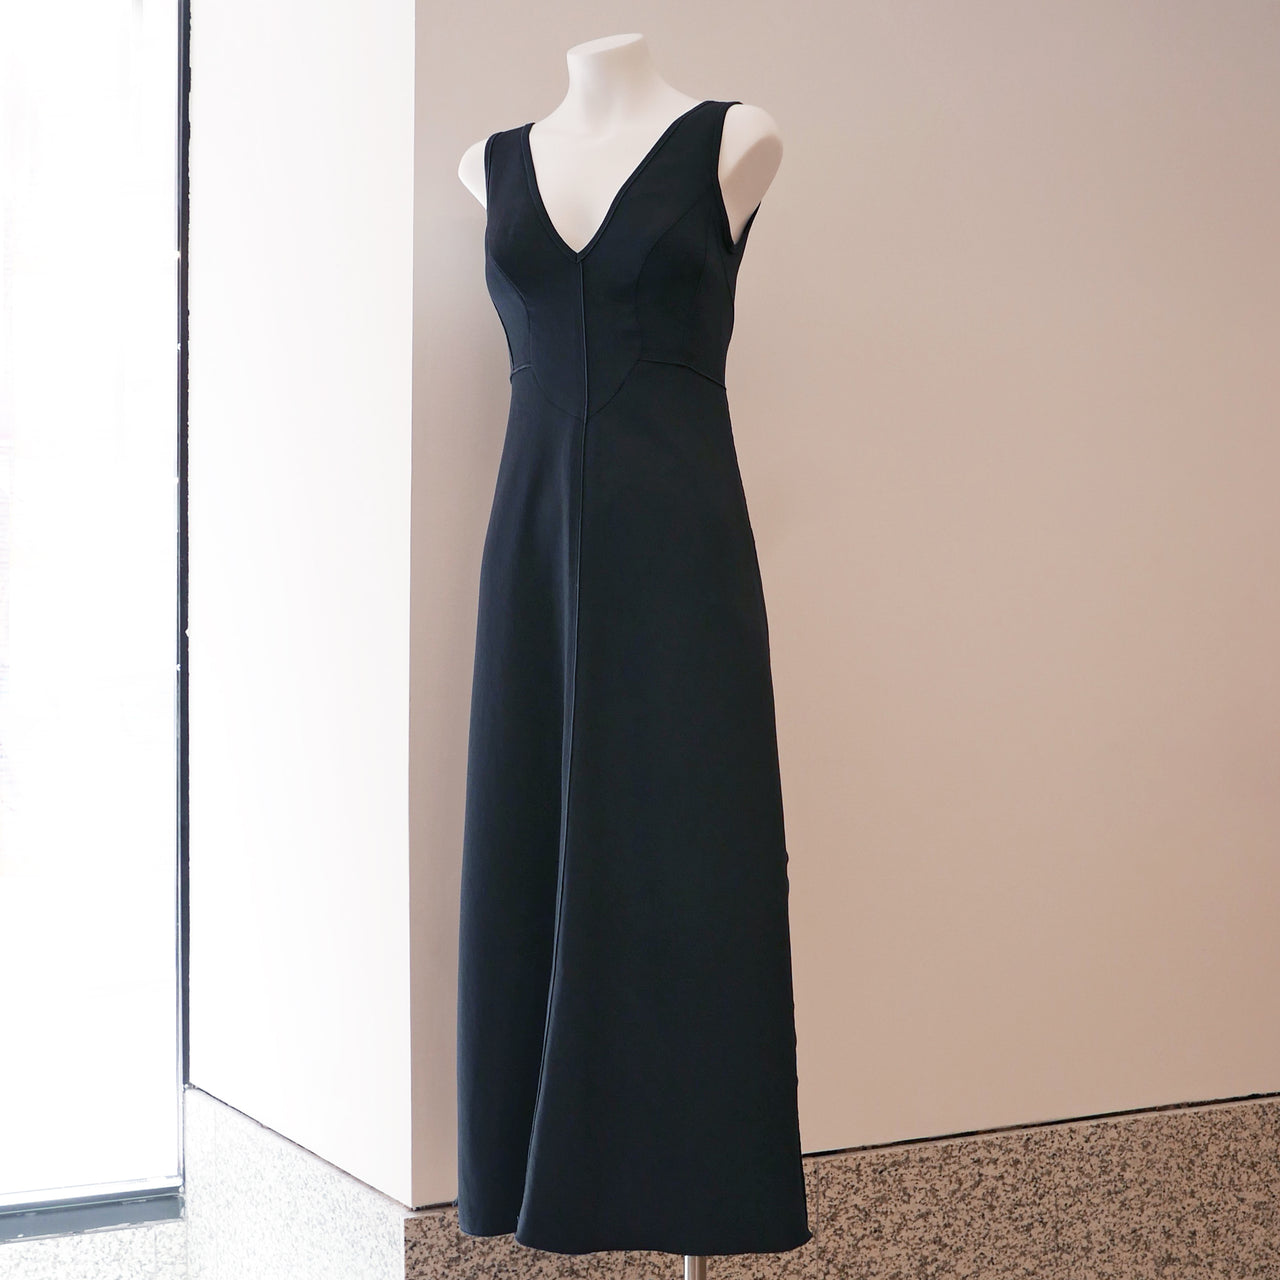 Agate Dress in Pebble Black